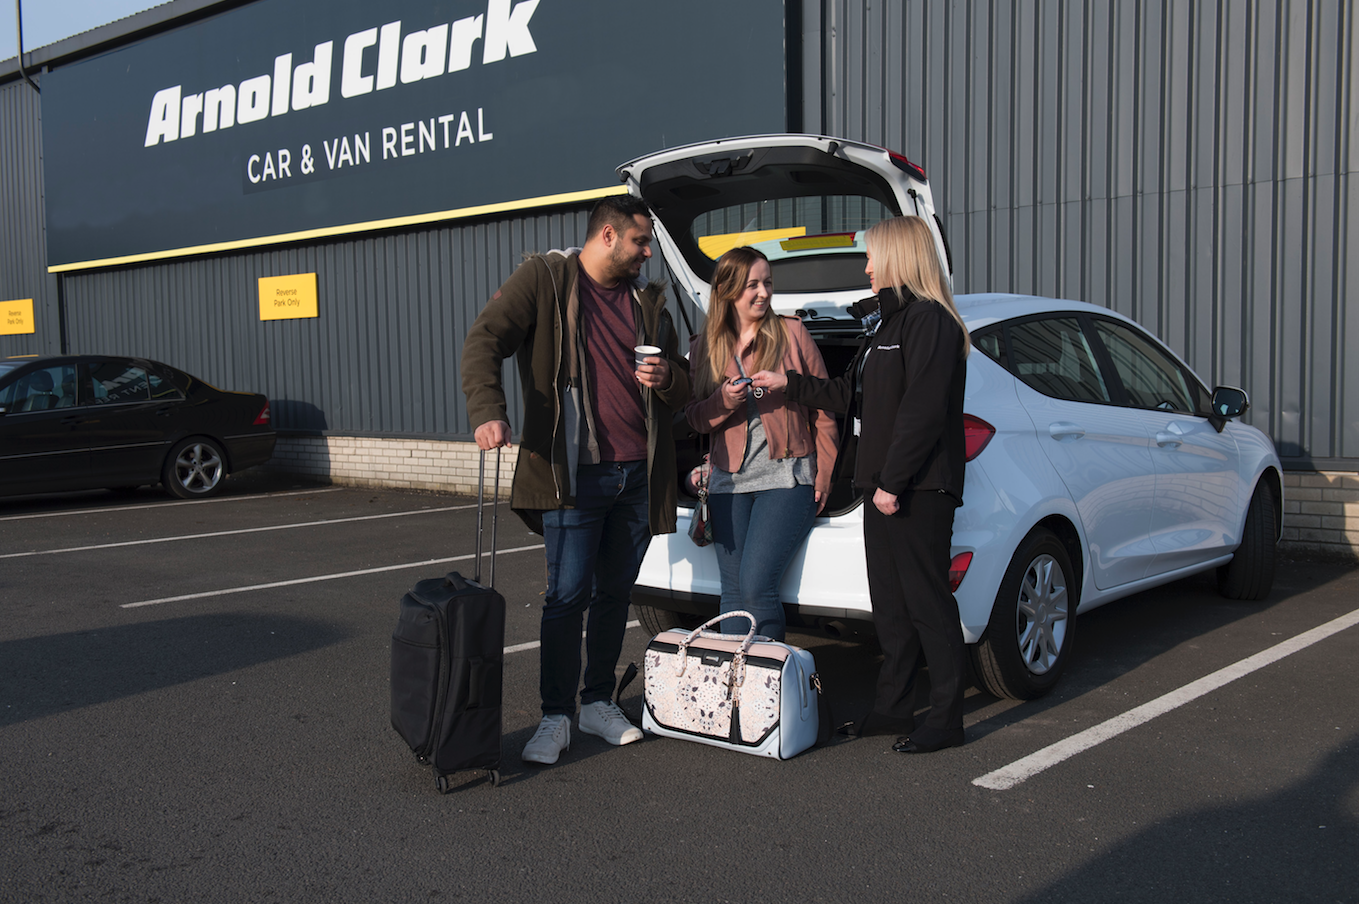 car hire made easy: looking after all your rental needs